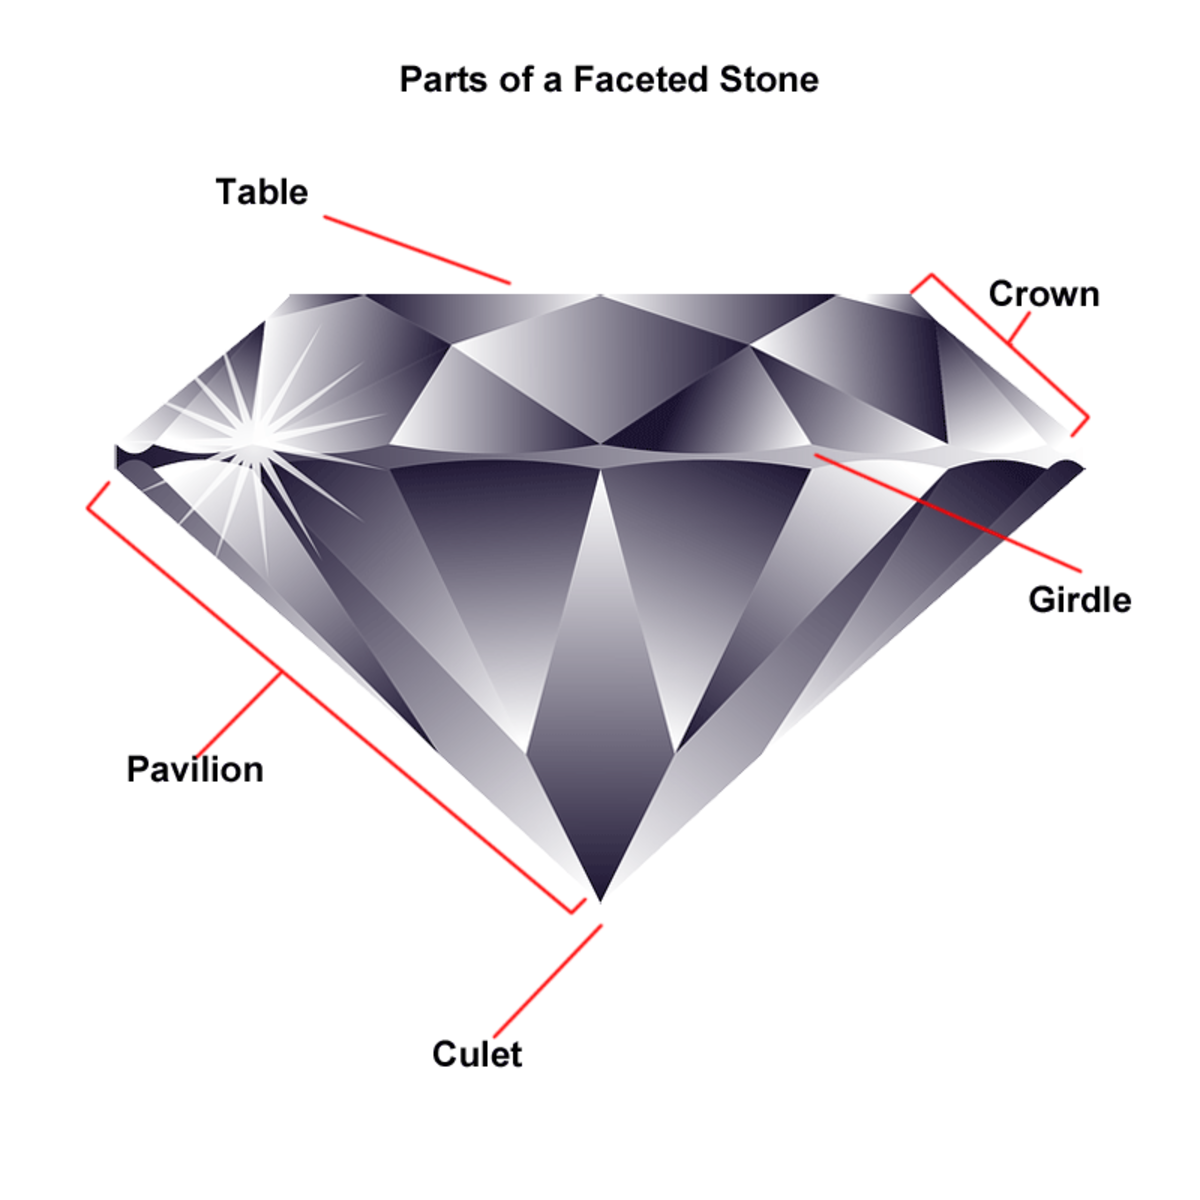 Diagram showing the parts of a faceted gemstone